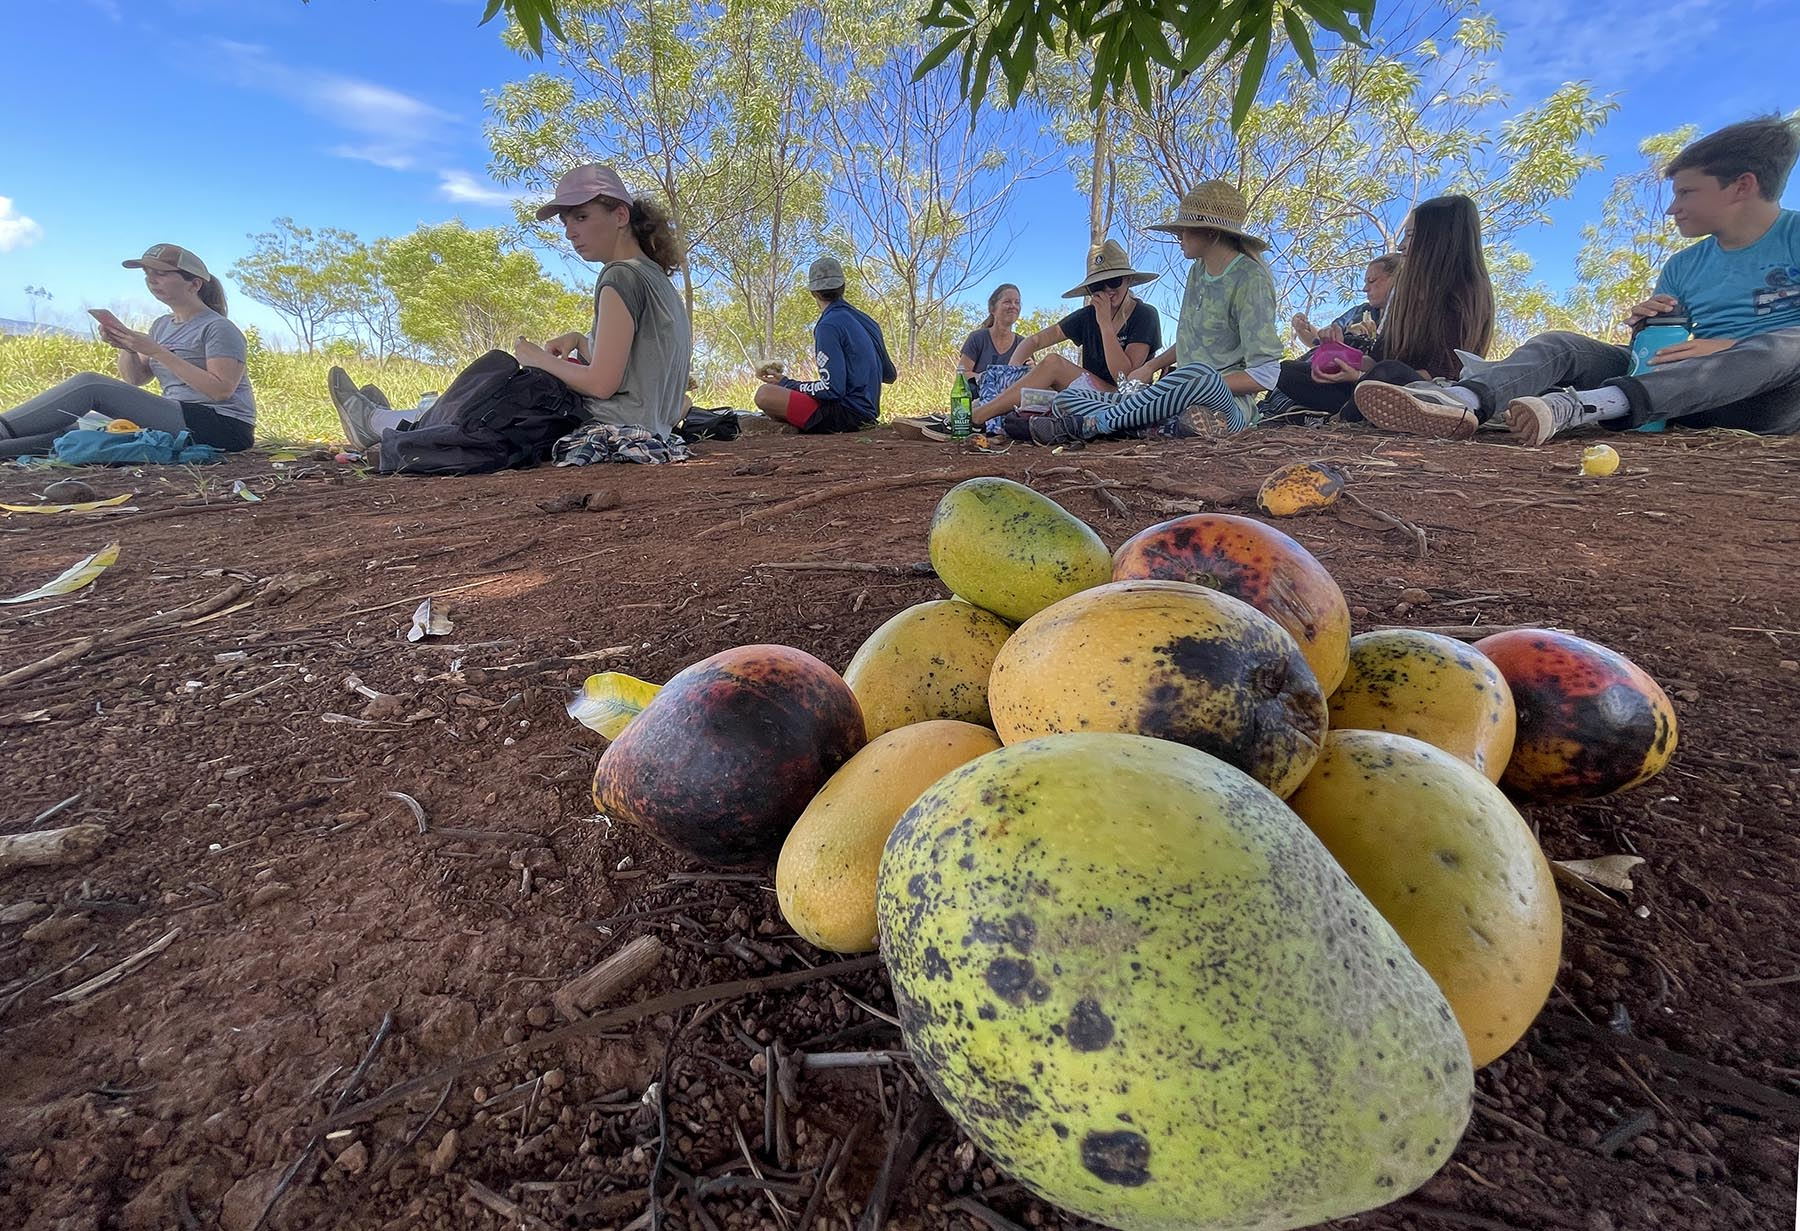 <p>Volunteers take a break from work and the sun beneath a lone mango tree on Kalahe'e Ridge in the Waimea Valley. The workday begins at 9 a.m. and lasts until 3 p.m. so volunteers take frequent breaks to conserve energy and enjoy the beauty of the valley.</p>